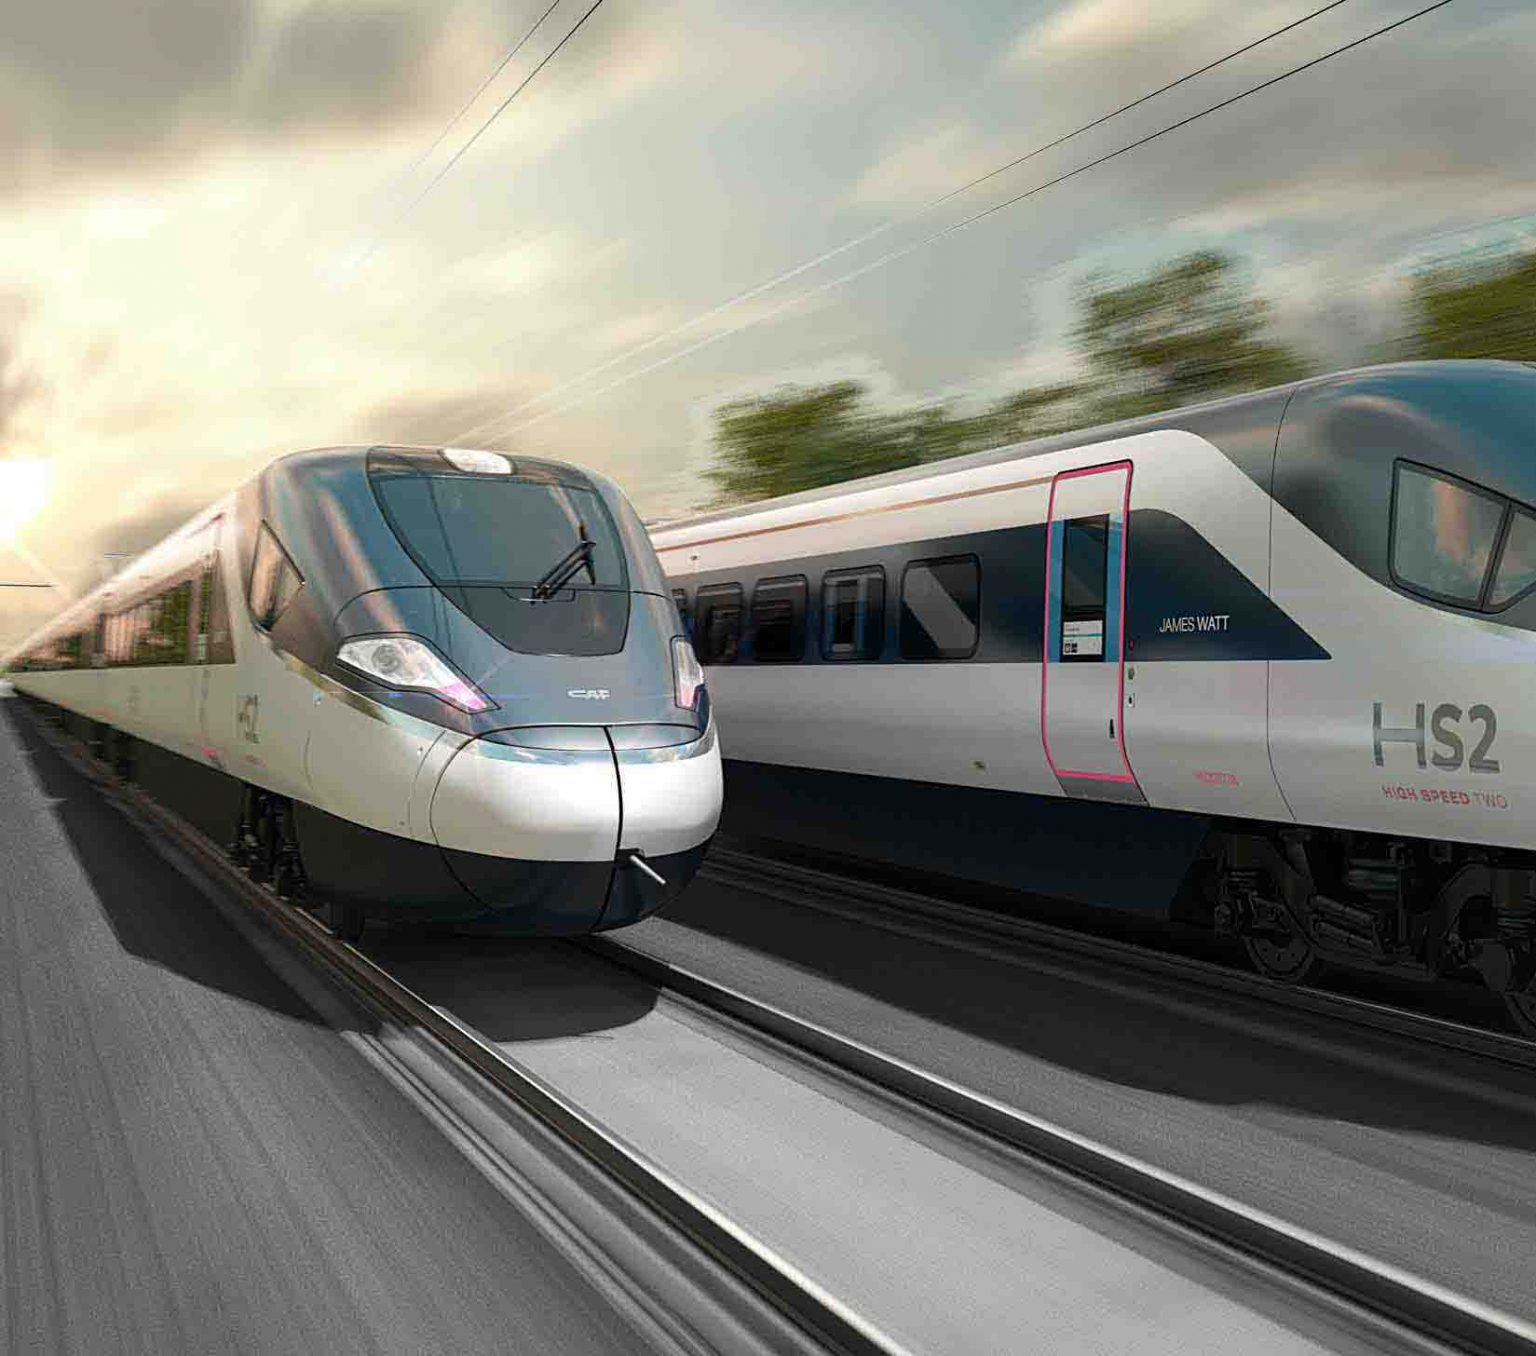 Business & Innovation - Businesses Invited To Tender For £12 Billion Worth Of HS2 Contracts